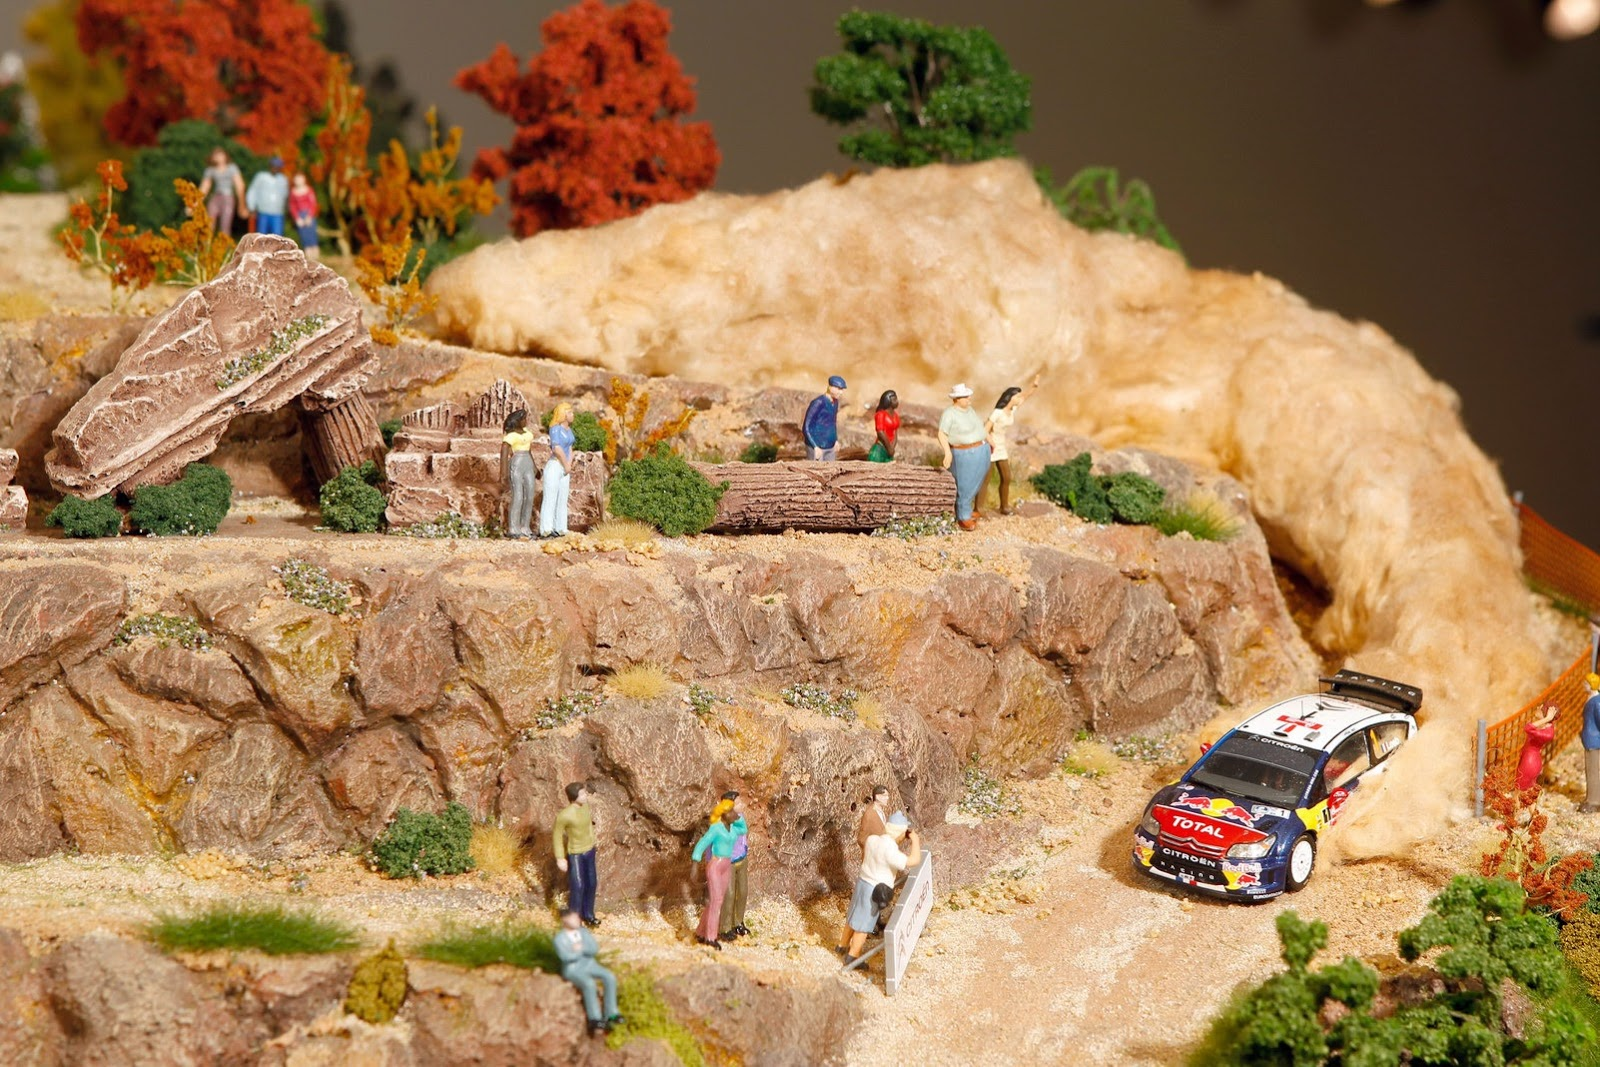 Zanimljive slike - Page 2 Citroen-celebrates-rally-success-with-impressive-diorama-on-top-of-a-ds3-photo-gallery_6